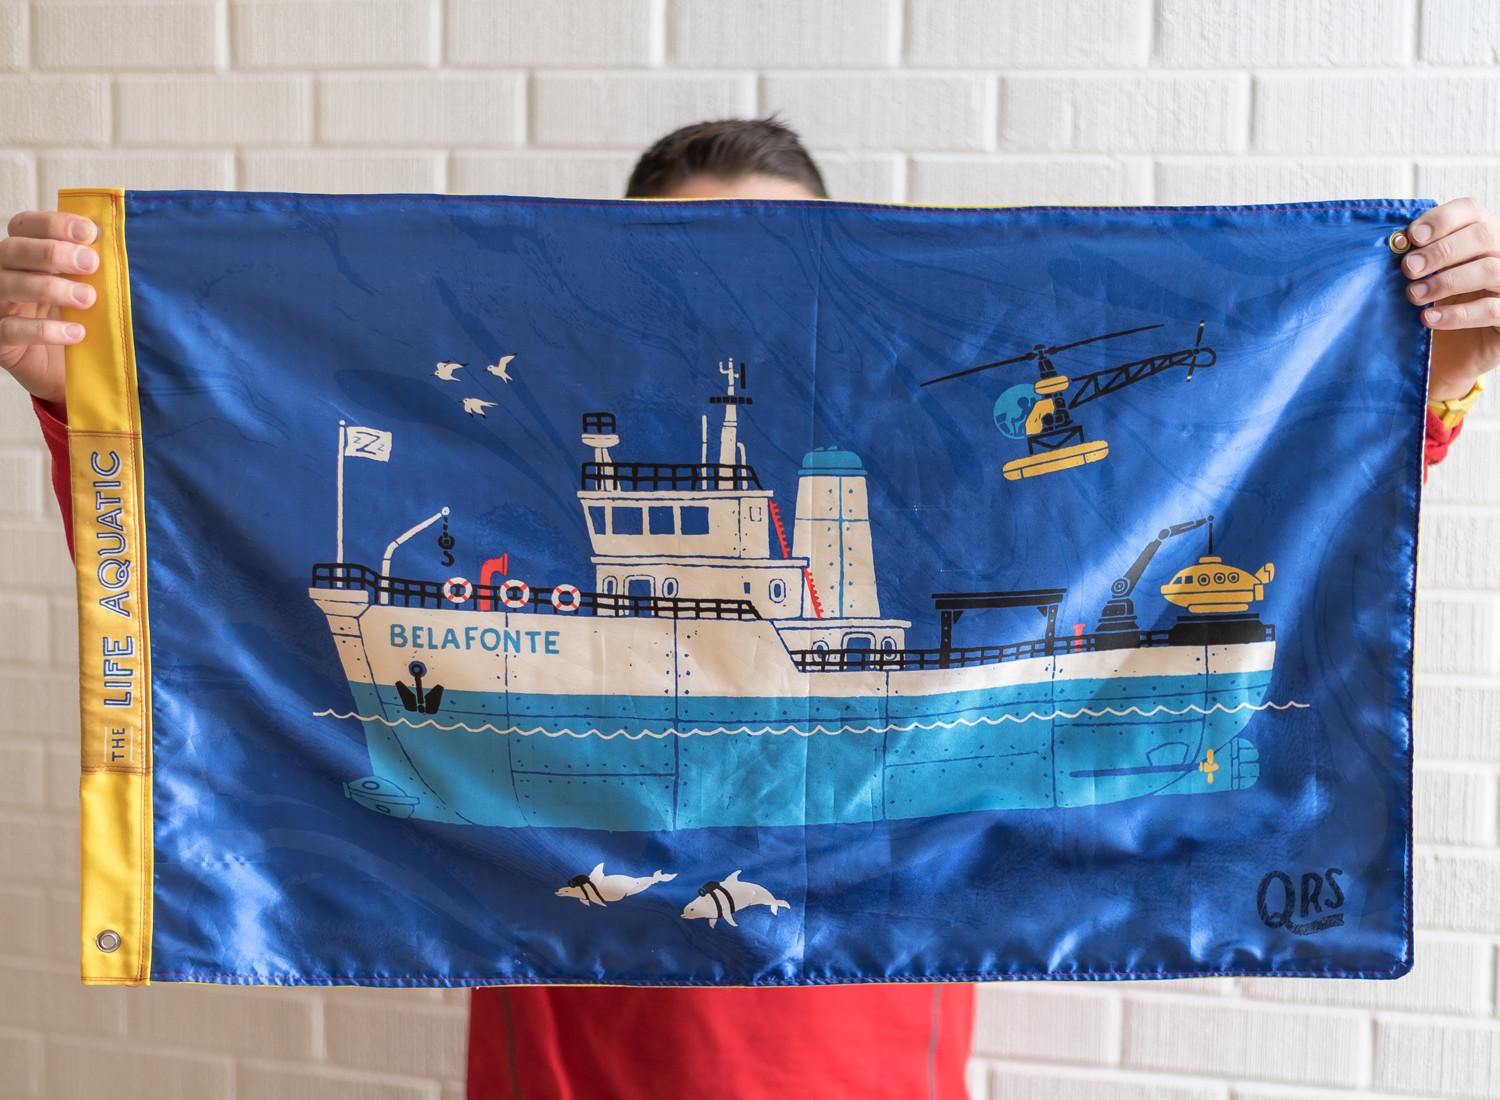 prototype of a flag design featuring the Belafonte